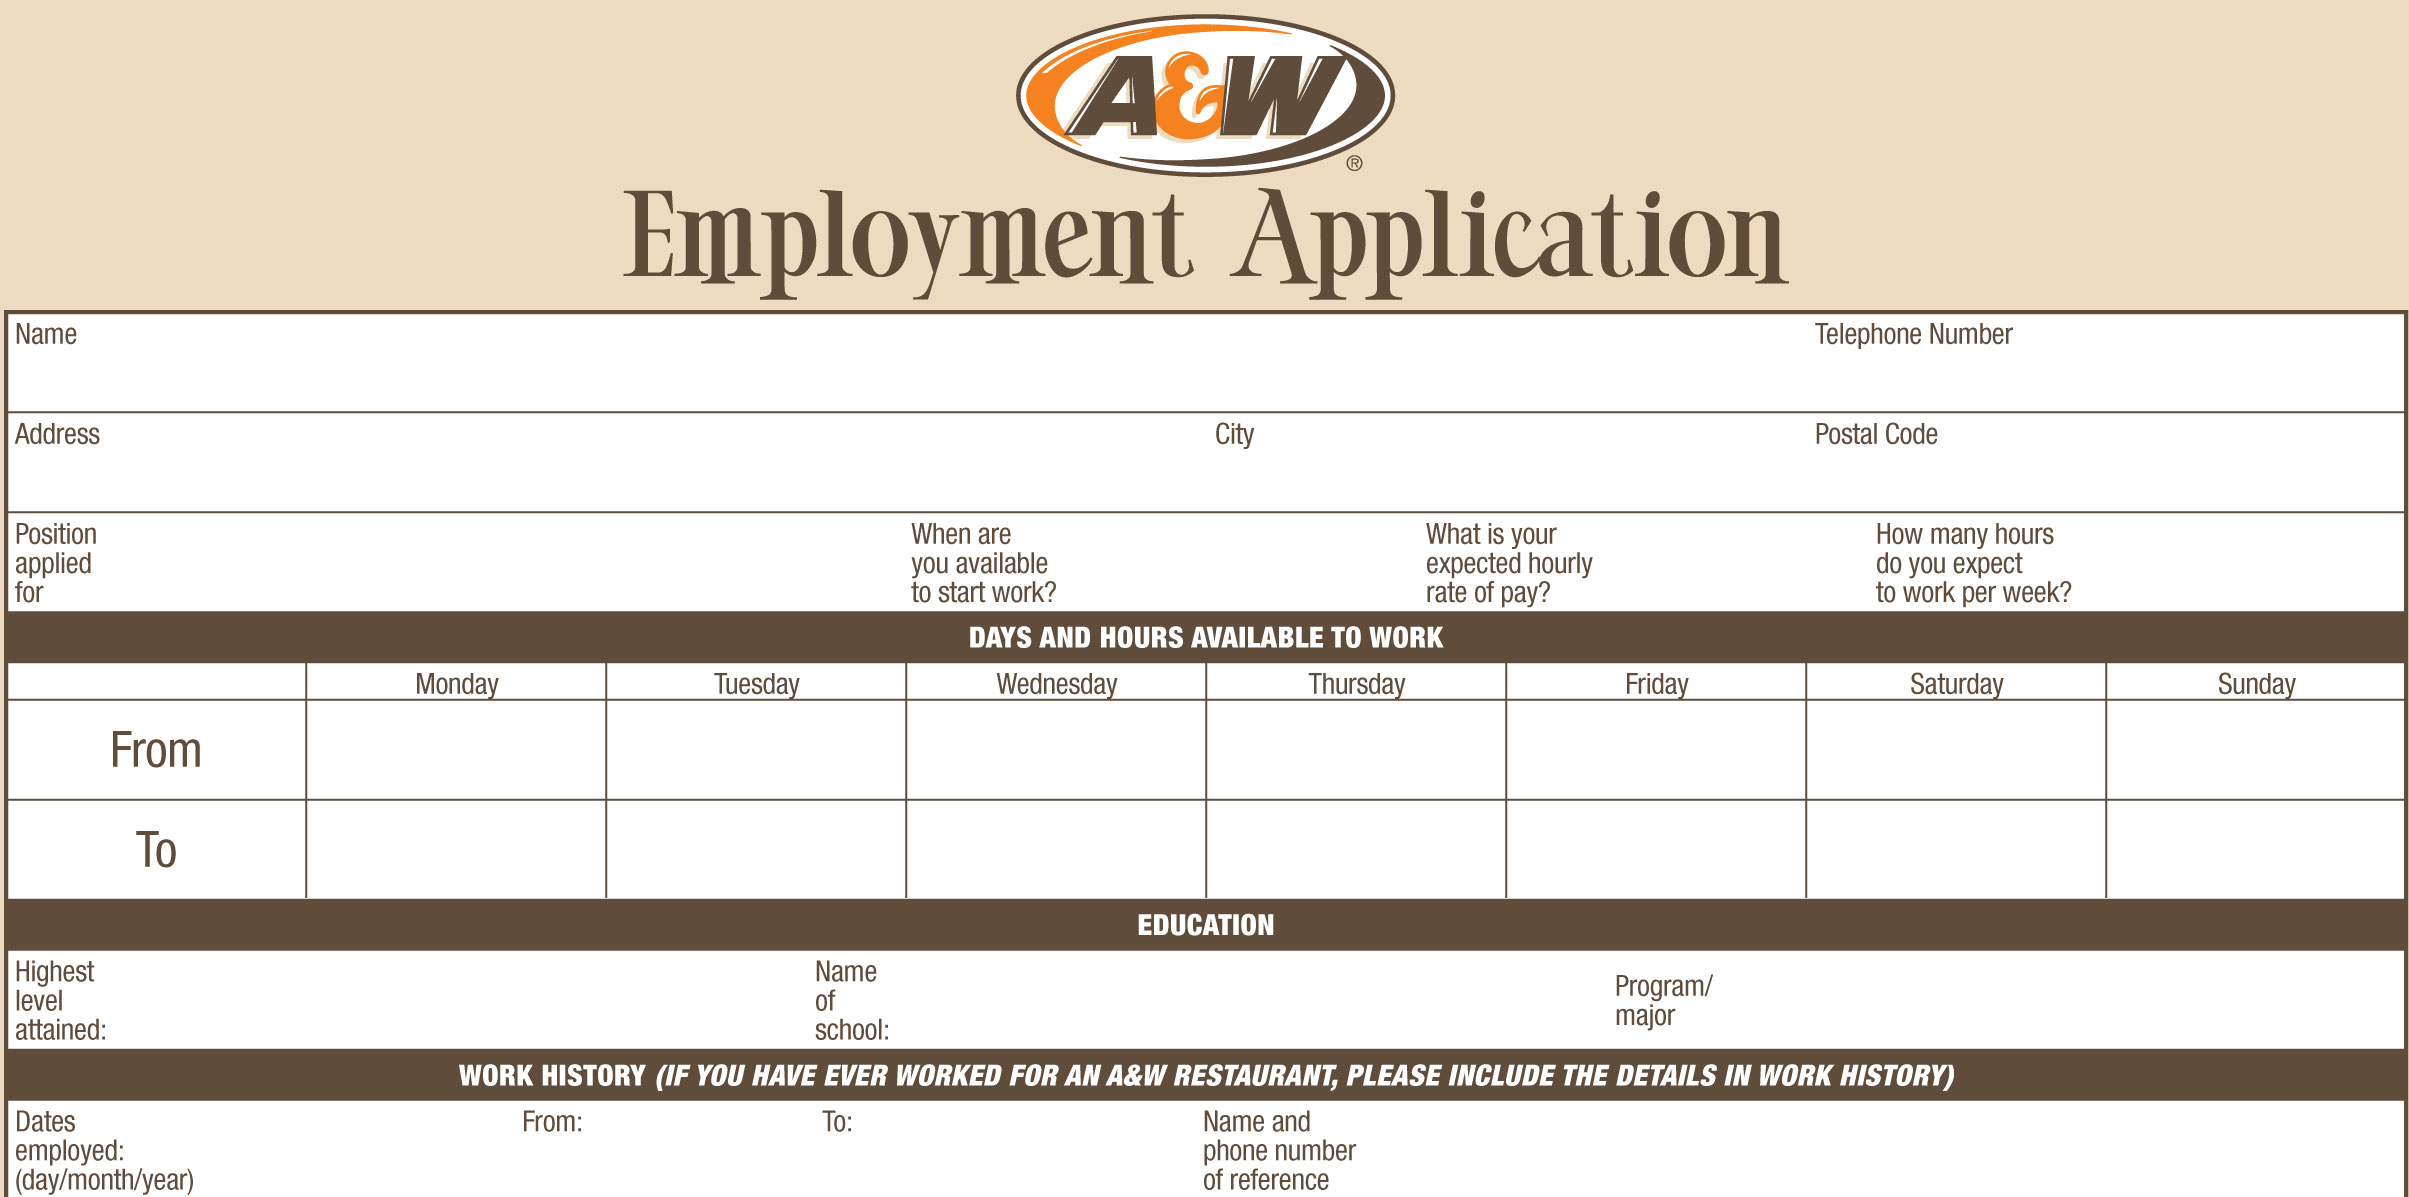 A & W Job Application - Printable Employment PDF Forms